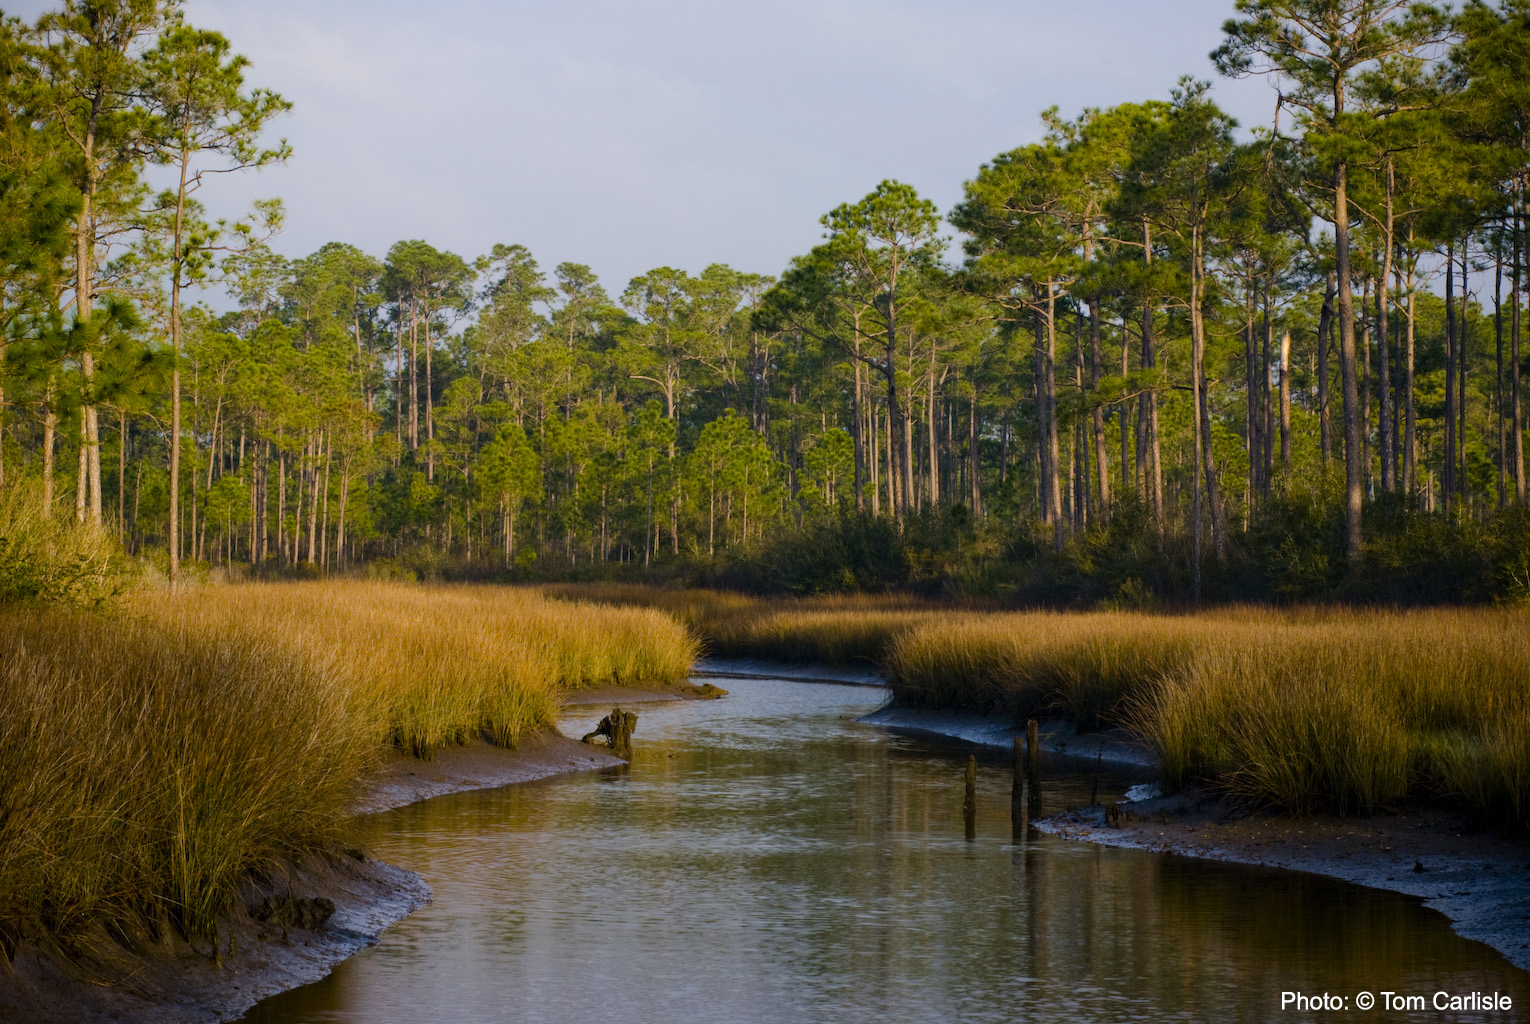 Water channeling into Grand Bay, Mississippi from a marsh area surrounded by trees. Photo: © Tom Carlisle